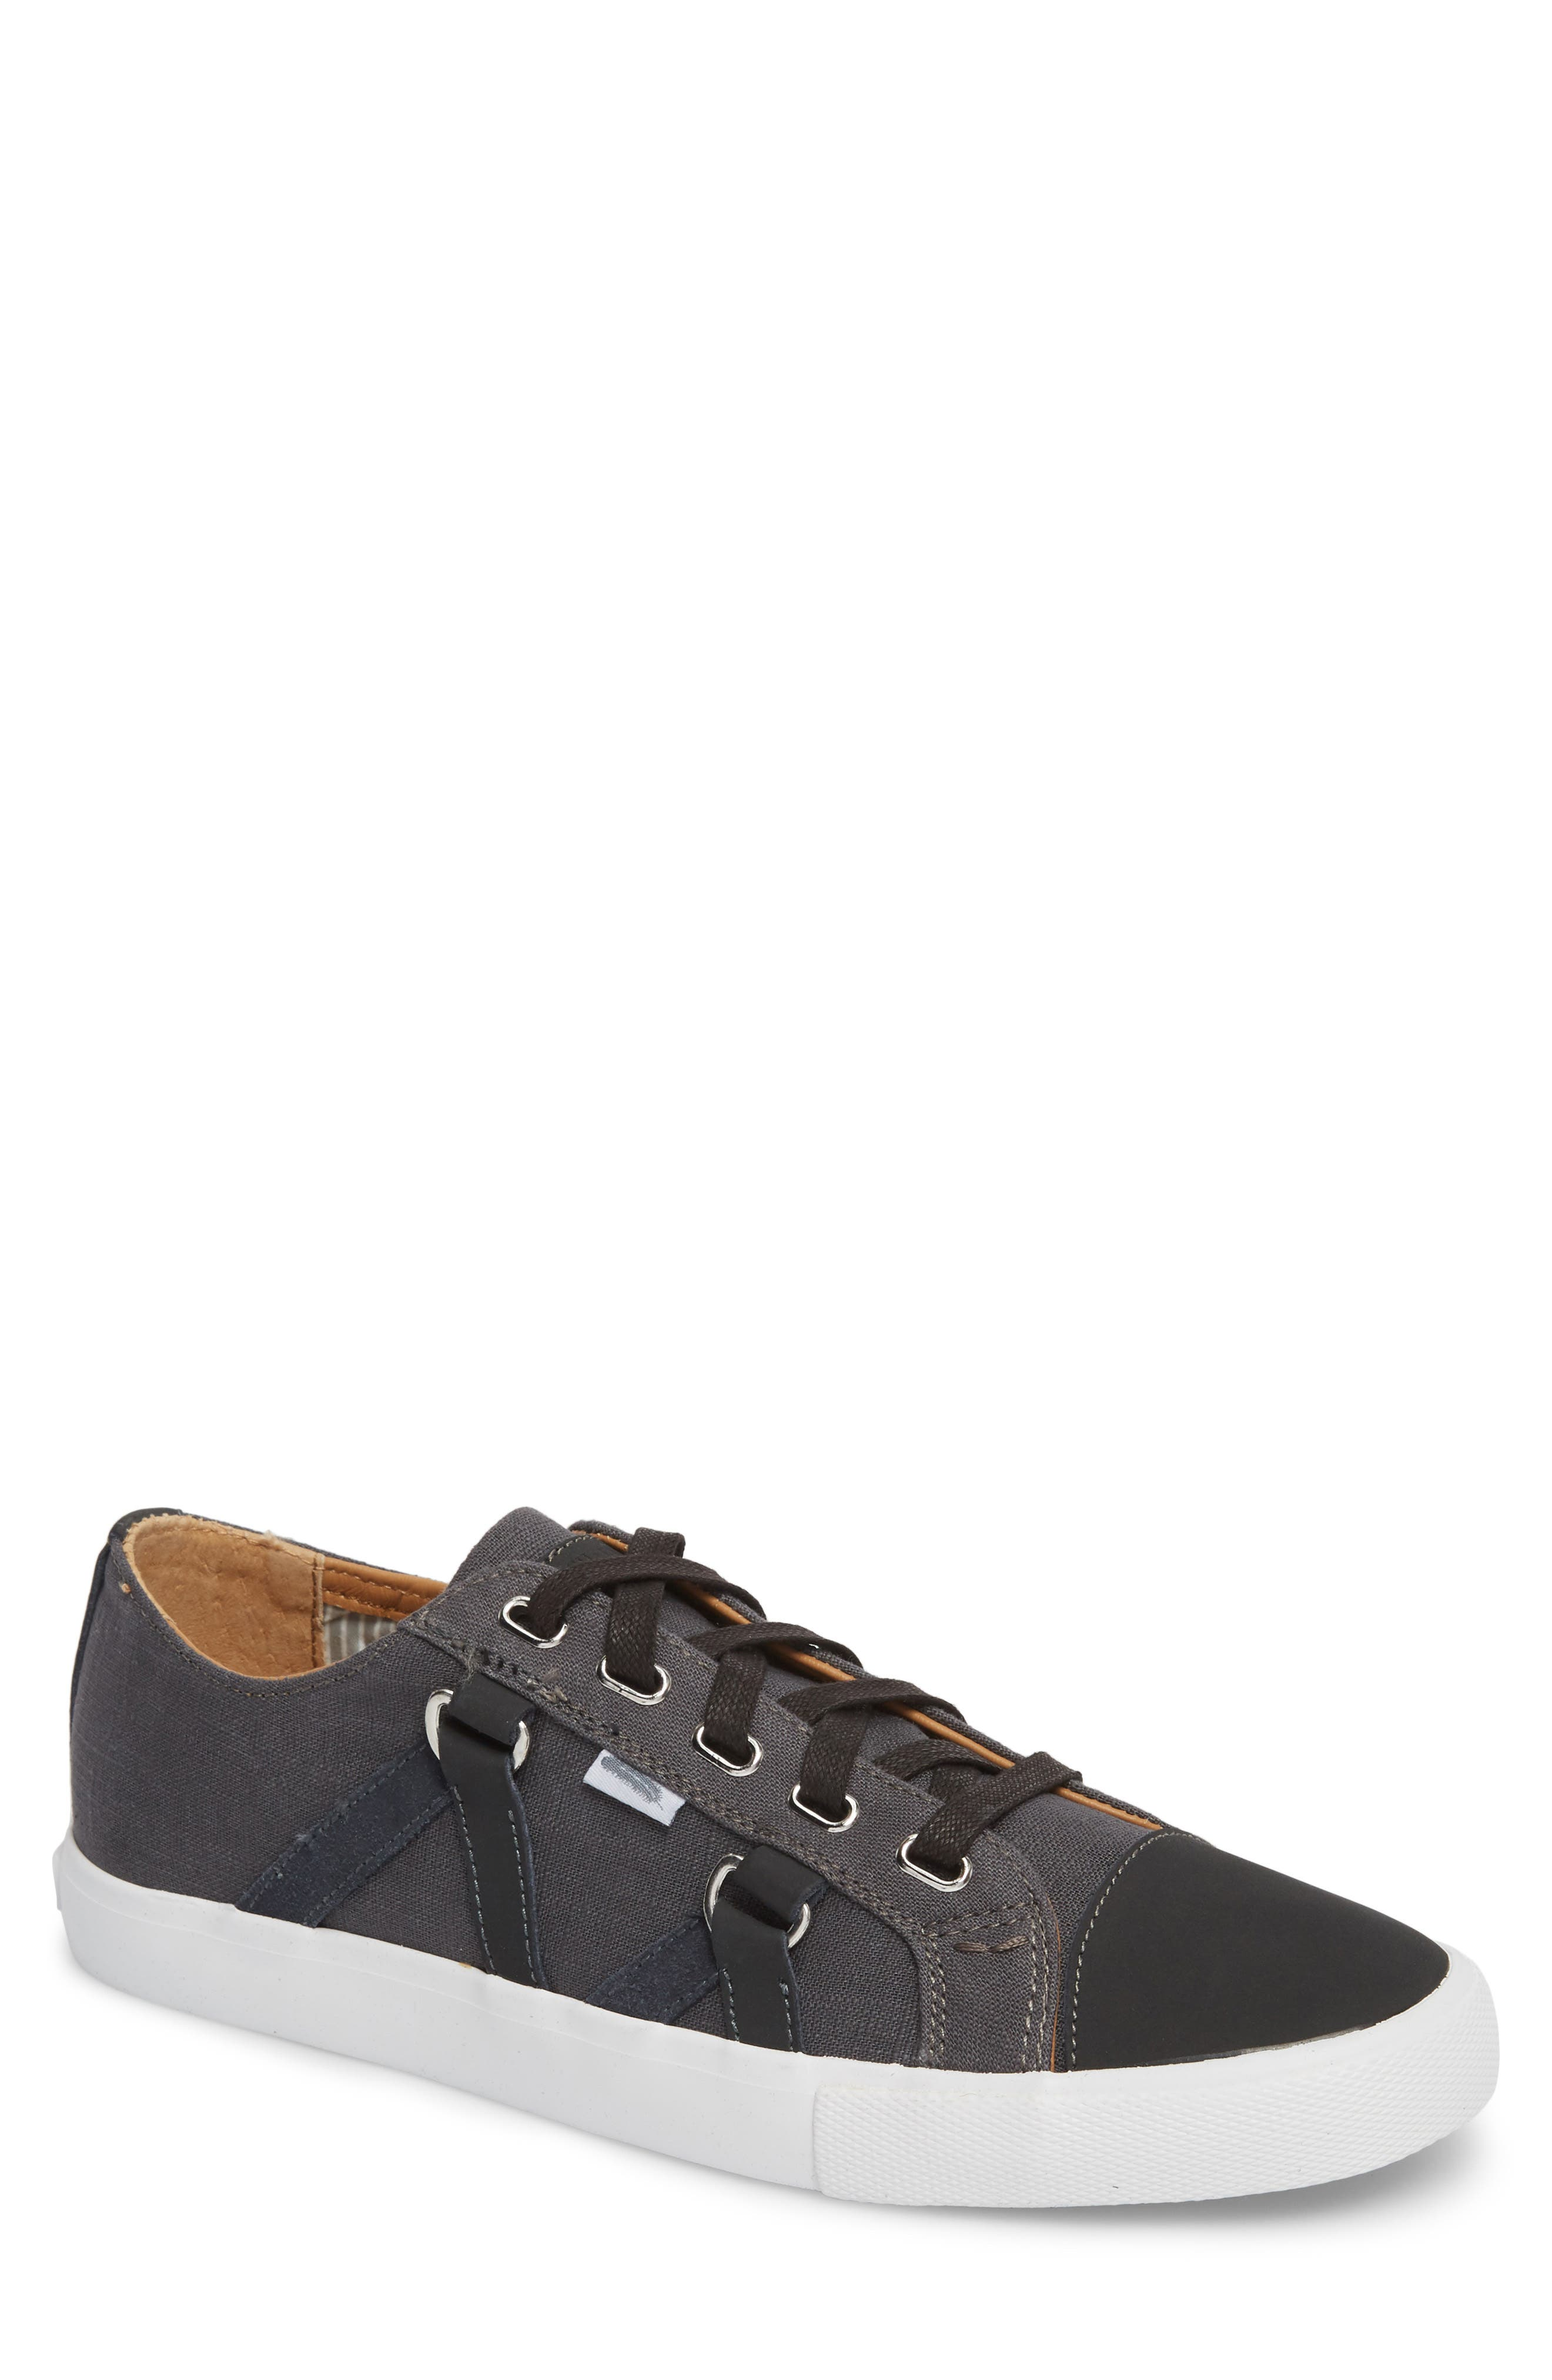 Signature Low Top Sneaker,                         Main,                         color, CHARCOAL CANVAS